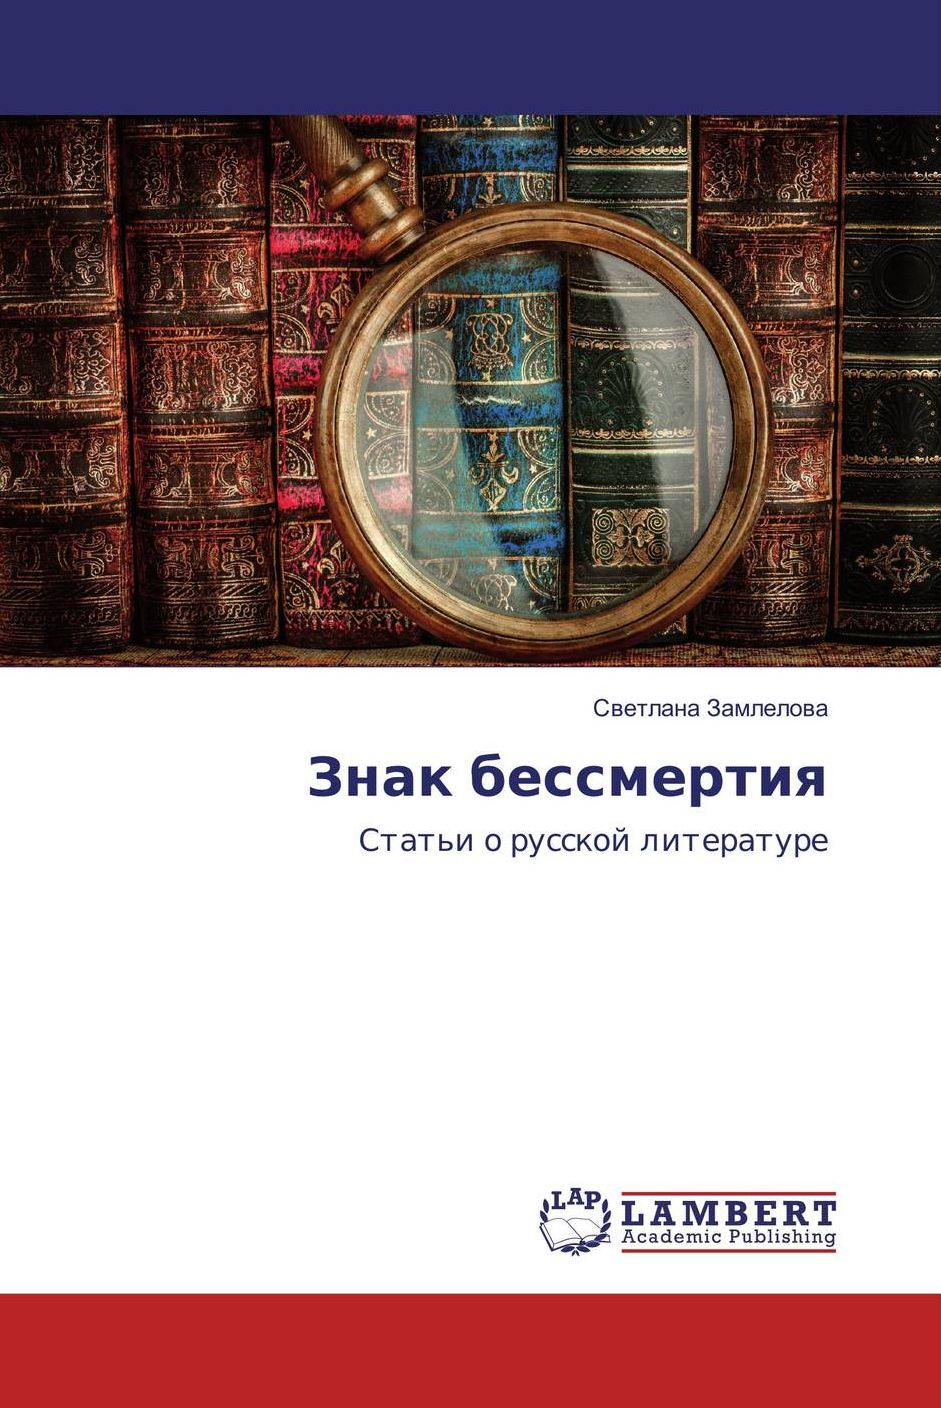 Светлана Замлелова. «Знак бессмертия». – LAP LAMBERT Academic Publishing, 2017. – 260 с.